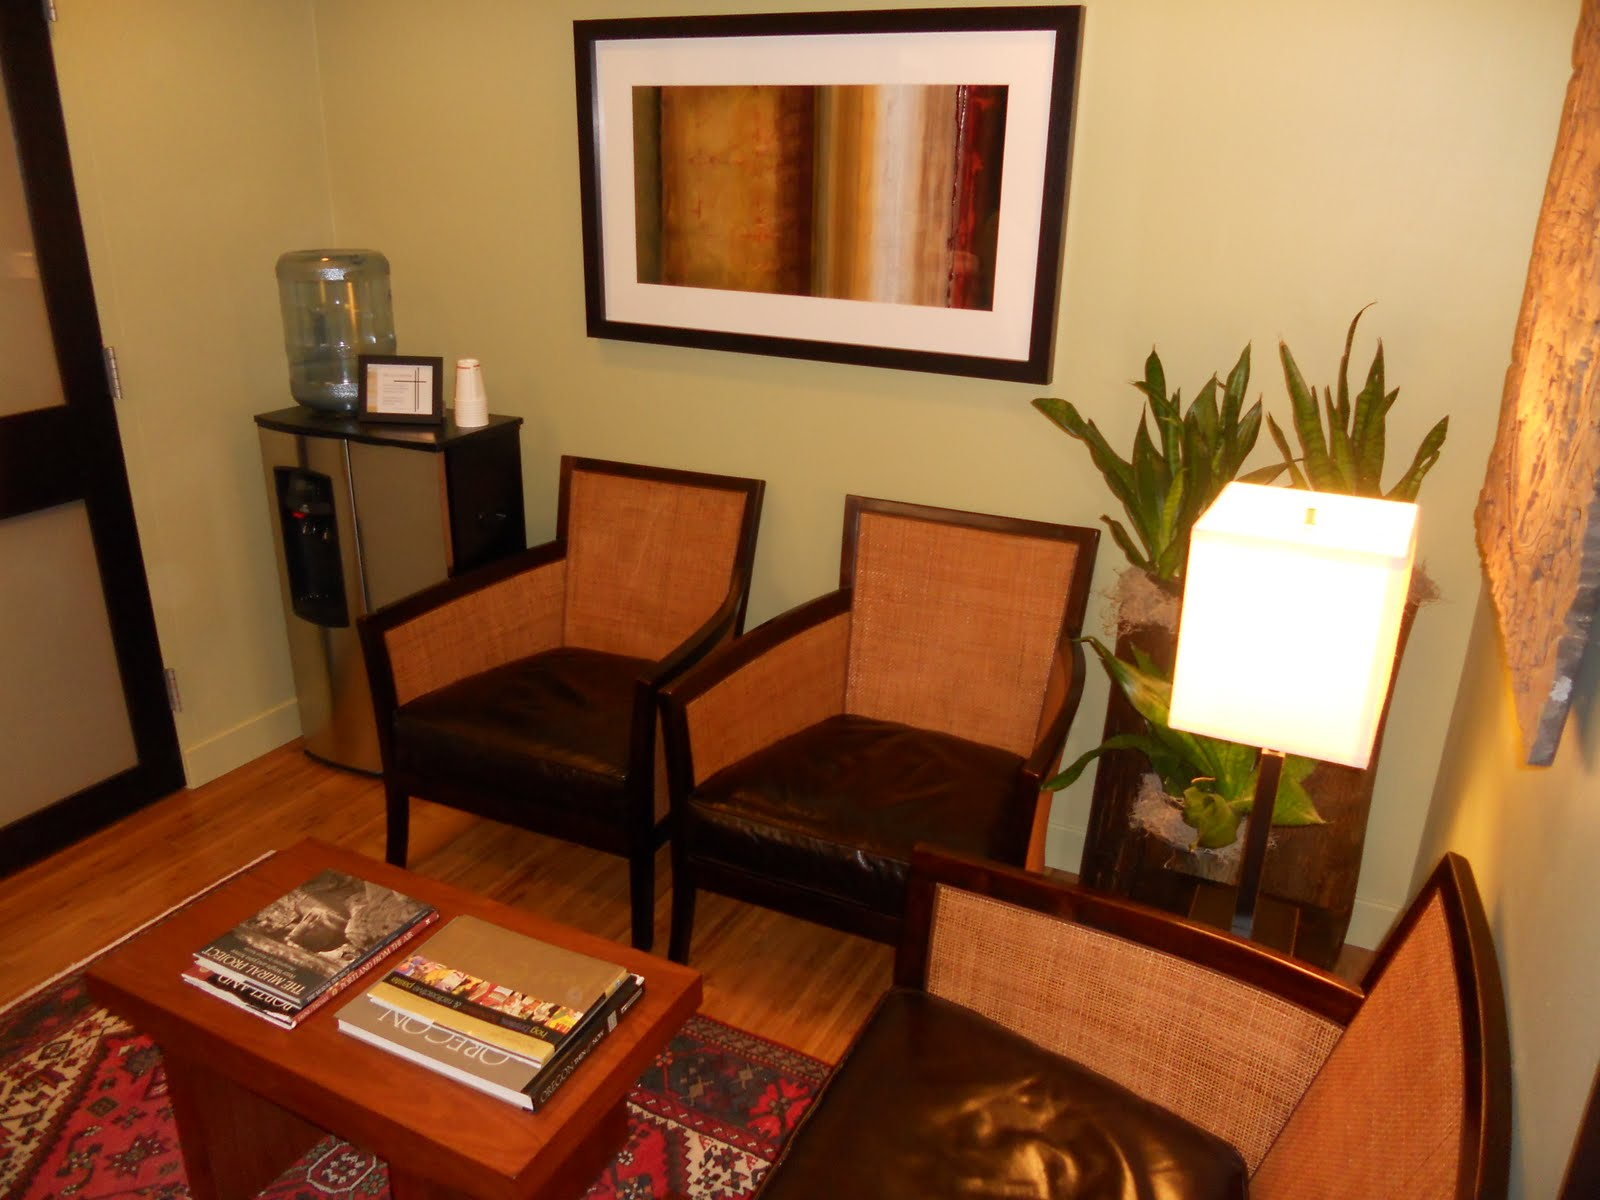 Portland oregon interior design blog the zen inspired for Zen office design ideas